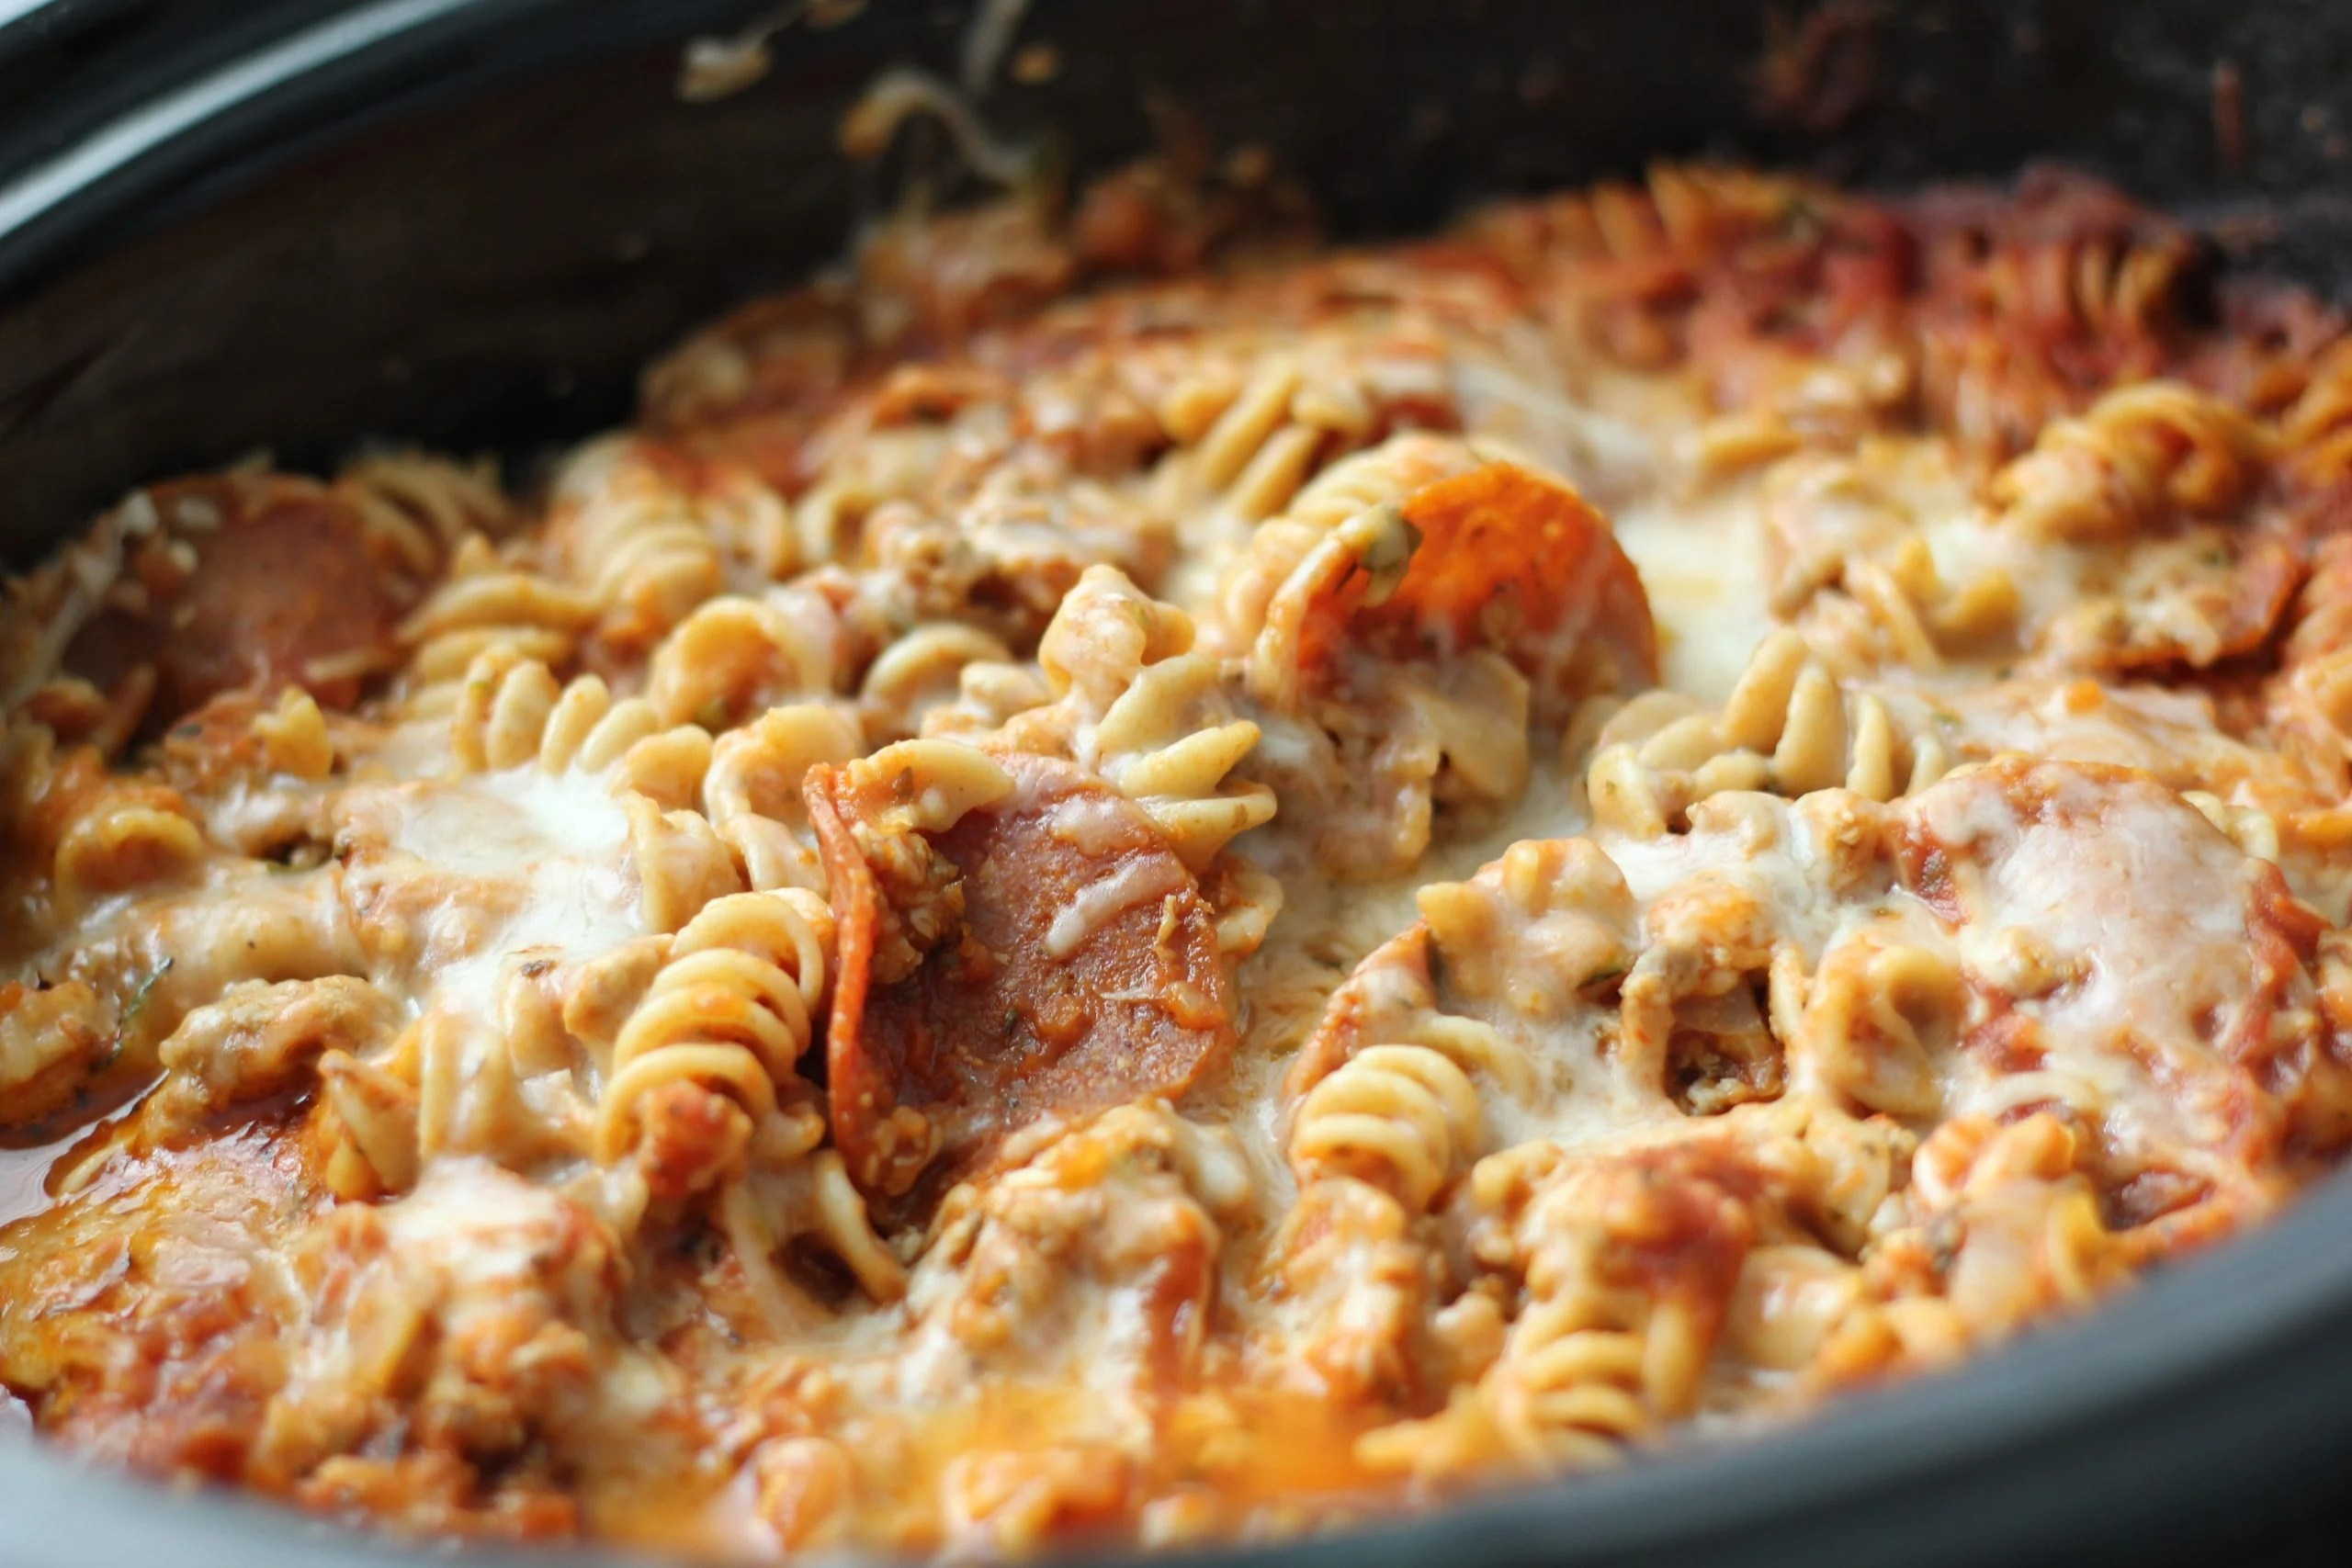 Crockpot Pizza Casserole in the slow cooker